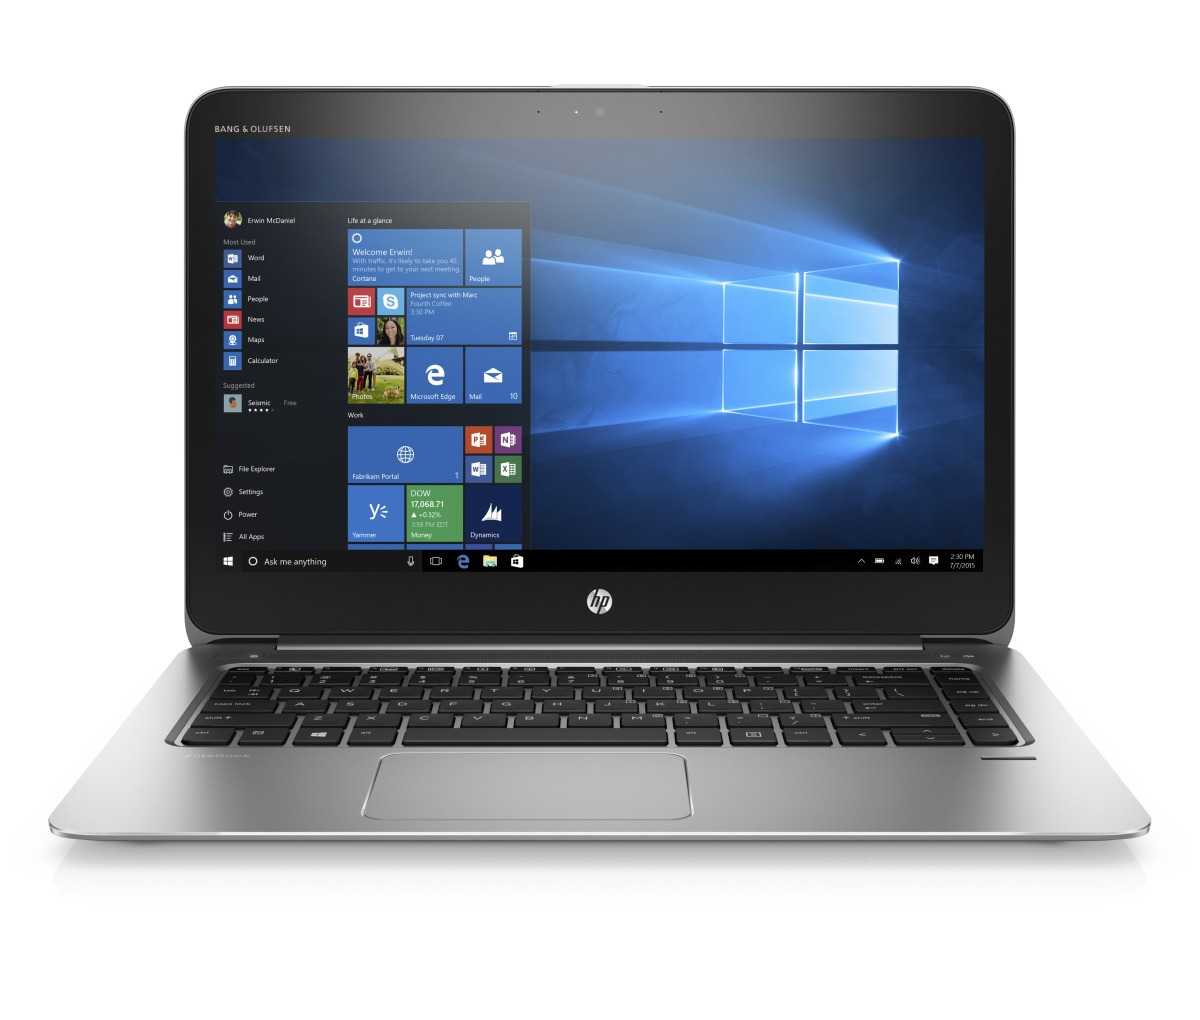 "HP Folio 1040 G3 14"" FHD/i7-6500U/8GB/256SSD/HDMI/WIFI/BT/NFC/MCR/3RServis/7+10P+adapter"